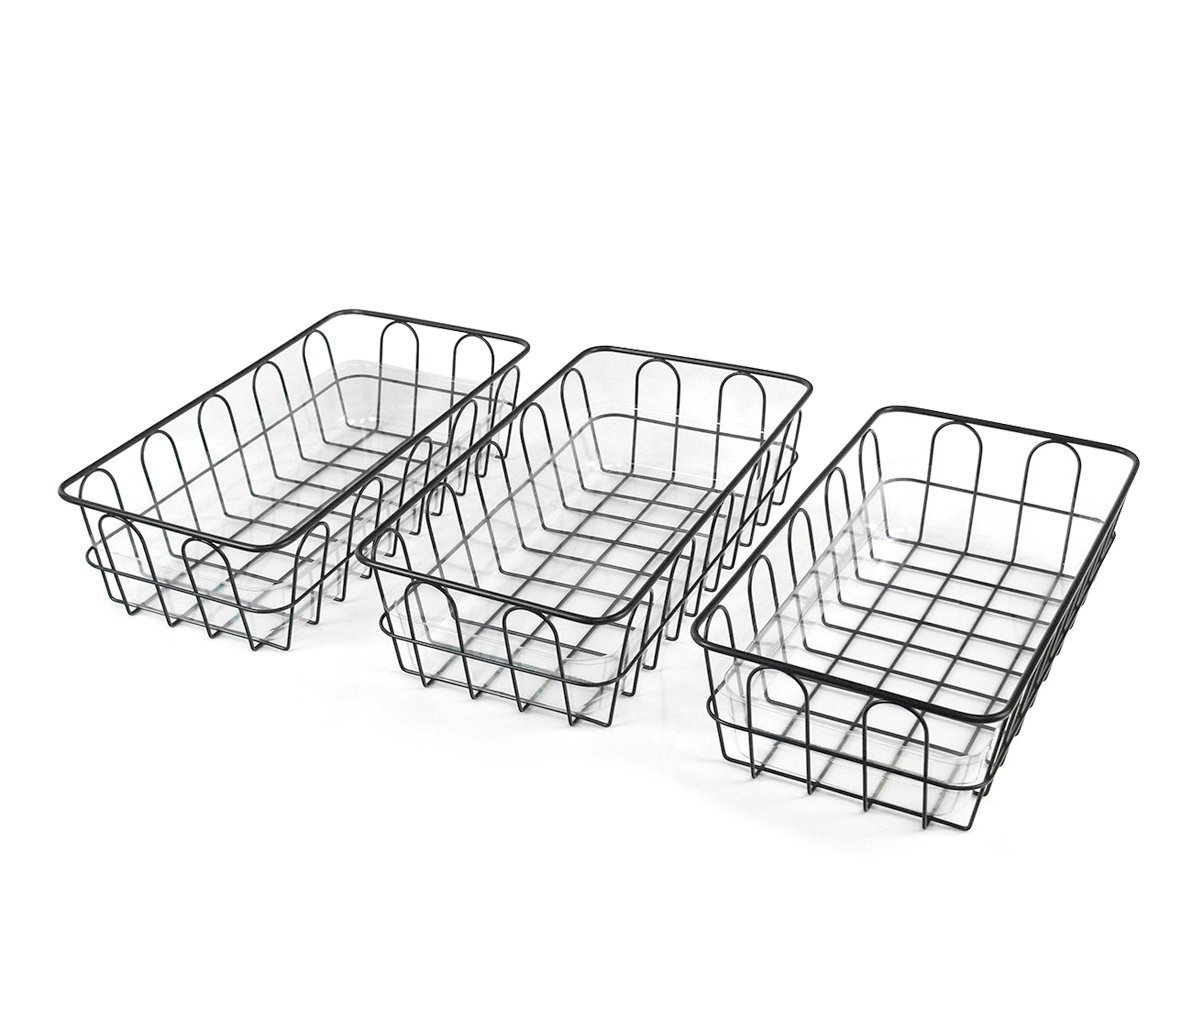 Set of 3 Wire Bread Fruit Basket with Food-Grade Transparent Plastic Tray, Black ShiYuan HCH-BRD-3P